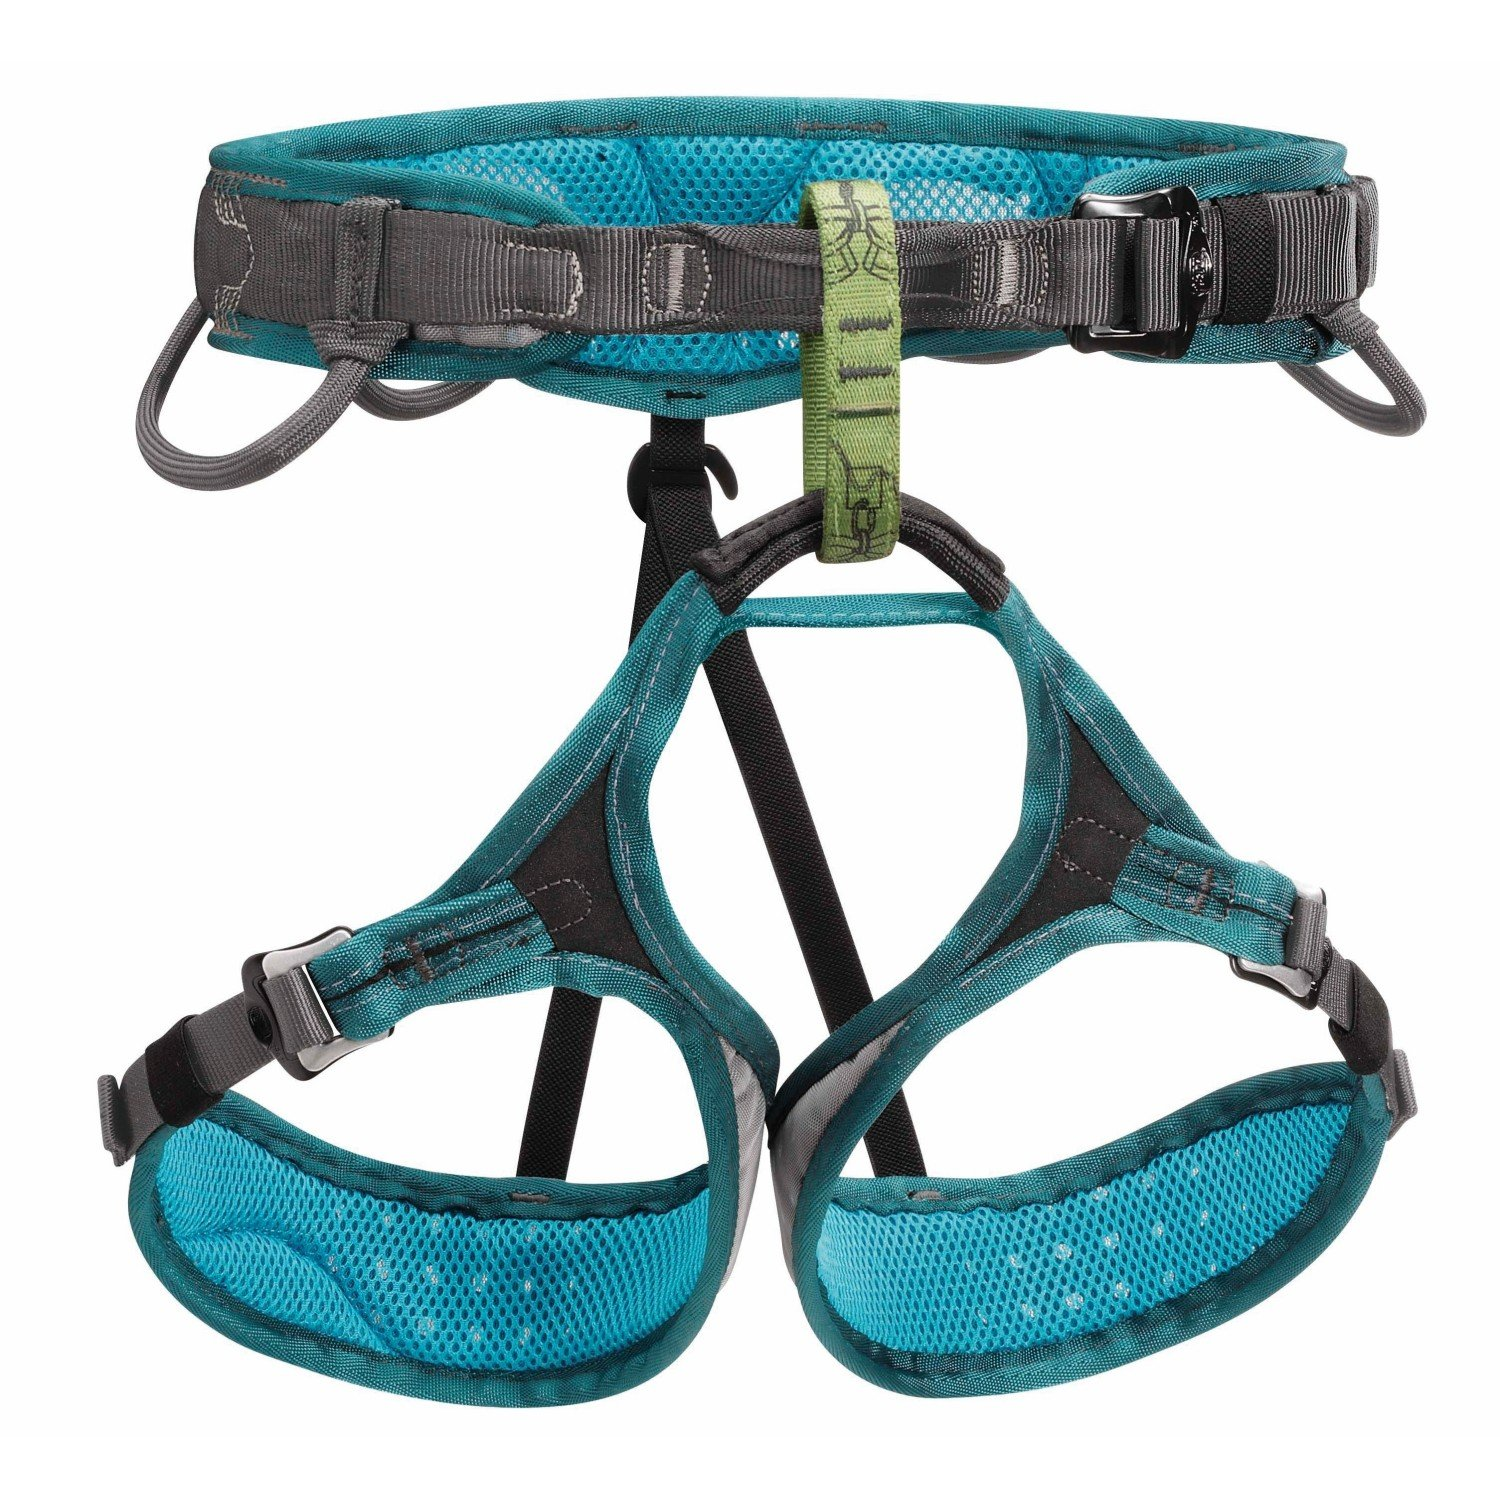 Petzl Mujer c98 a Luna c35at, azul claro, large: Amazon.es ...